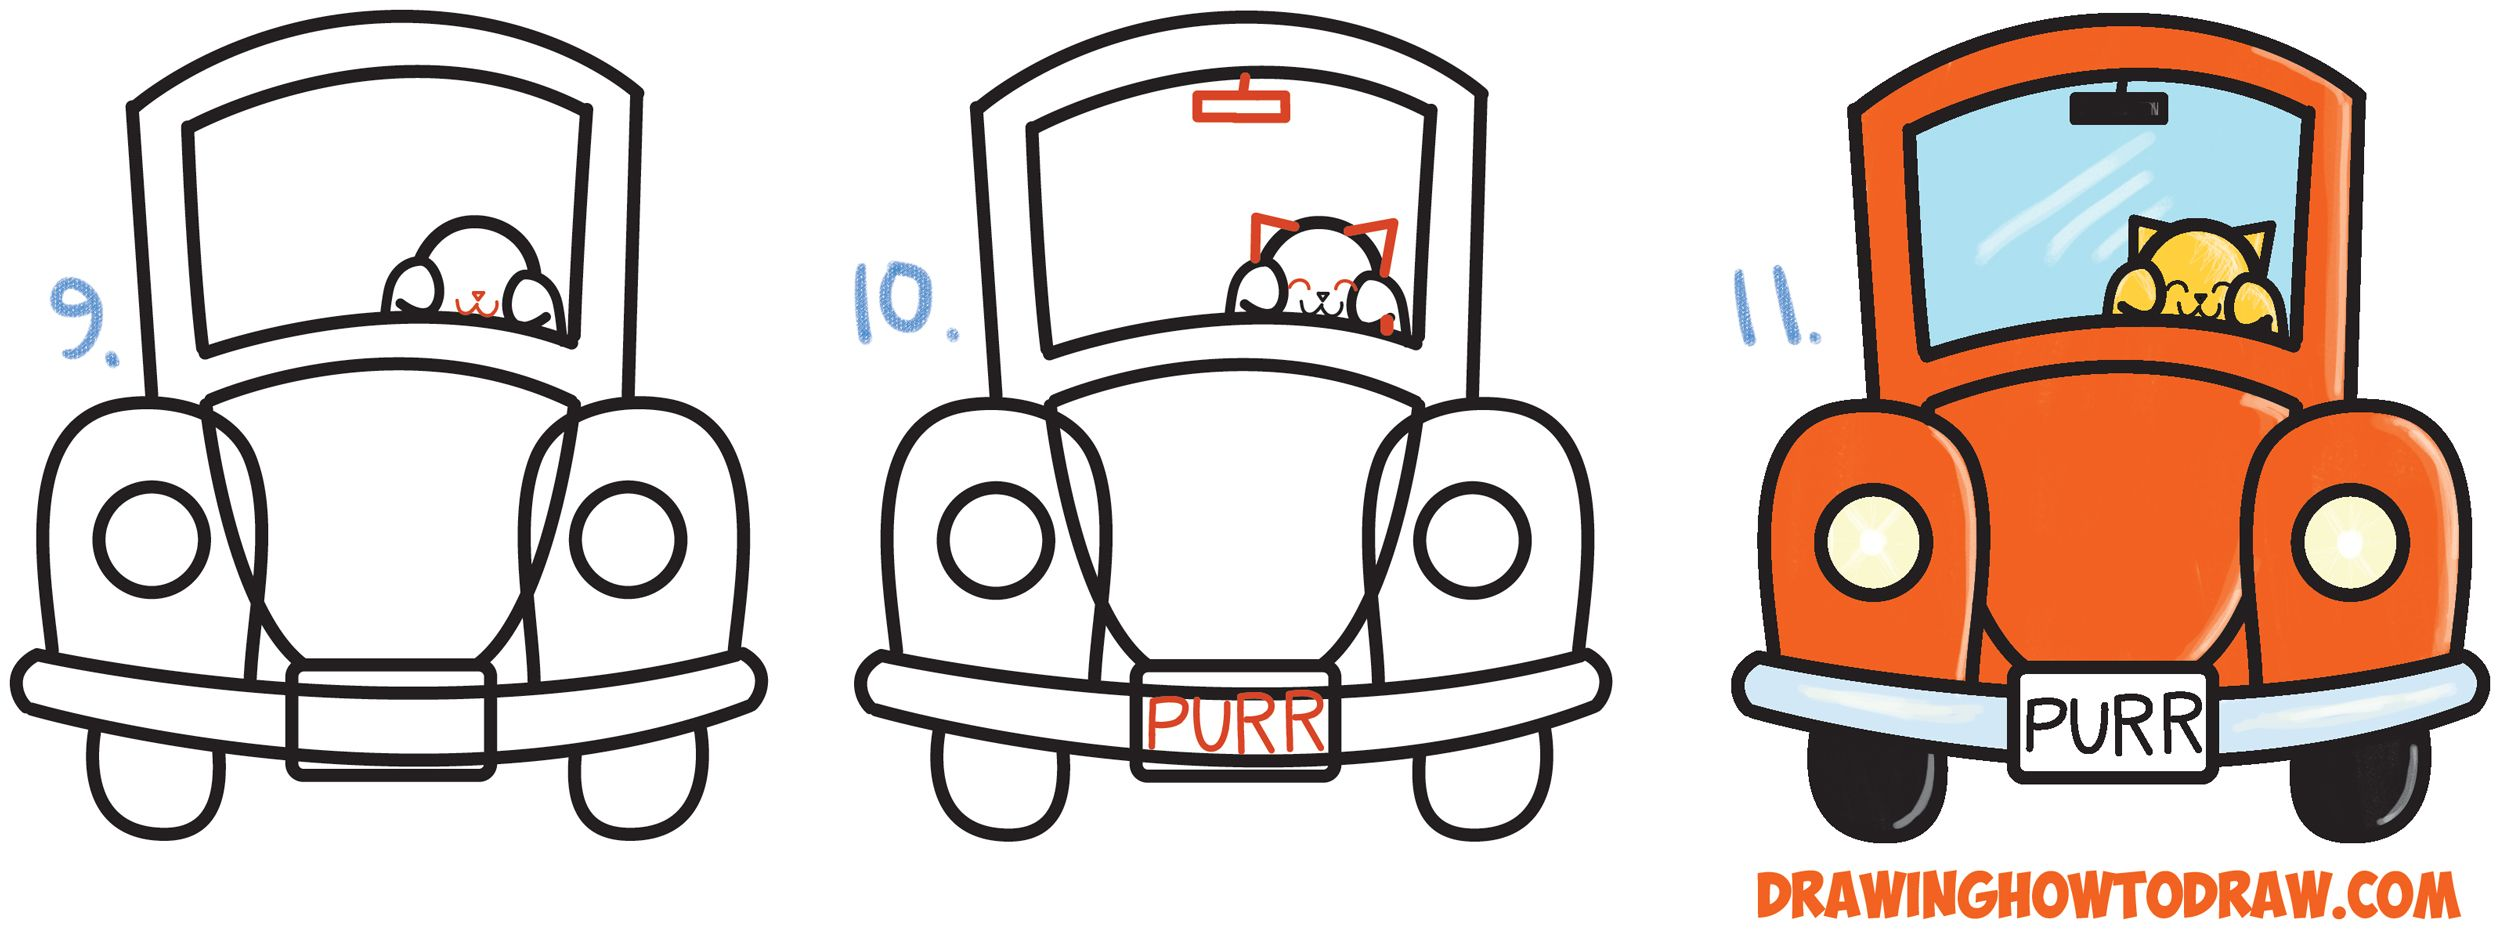 How To Draw Cute Cartoon Cat Driving A Car From Exclamation Points